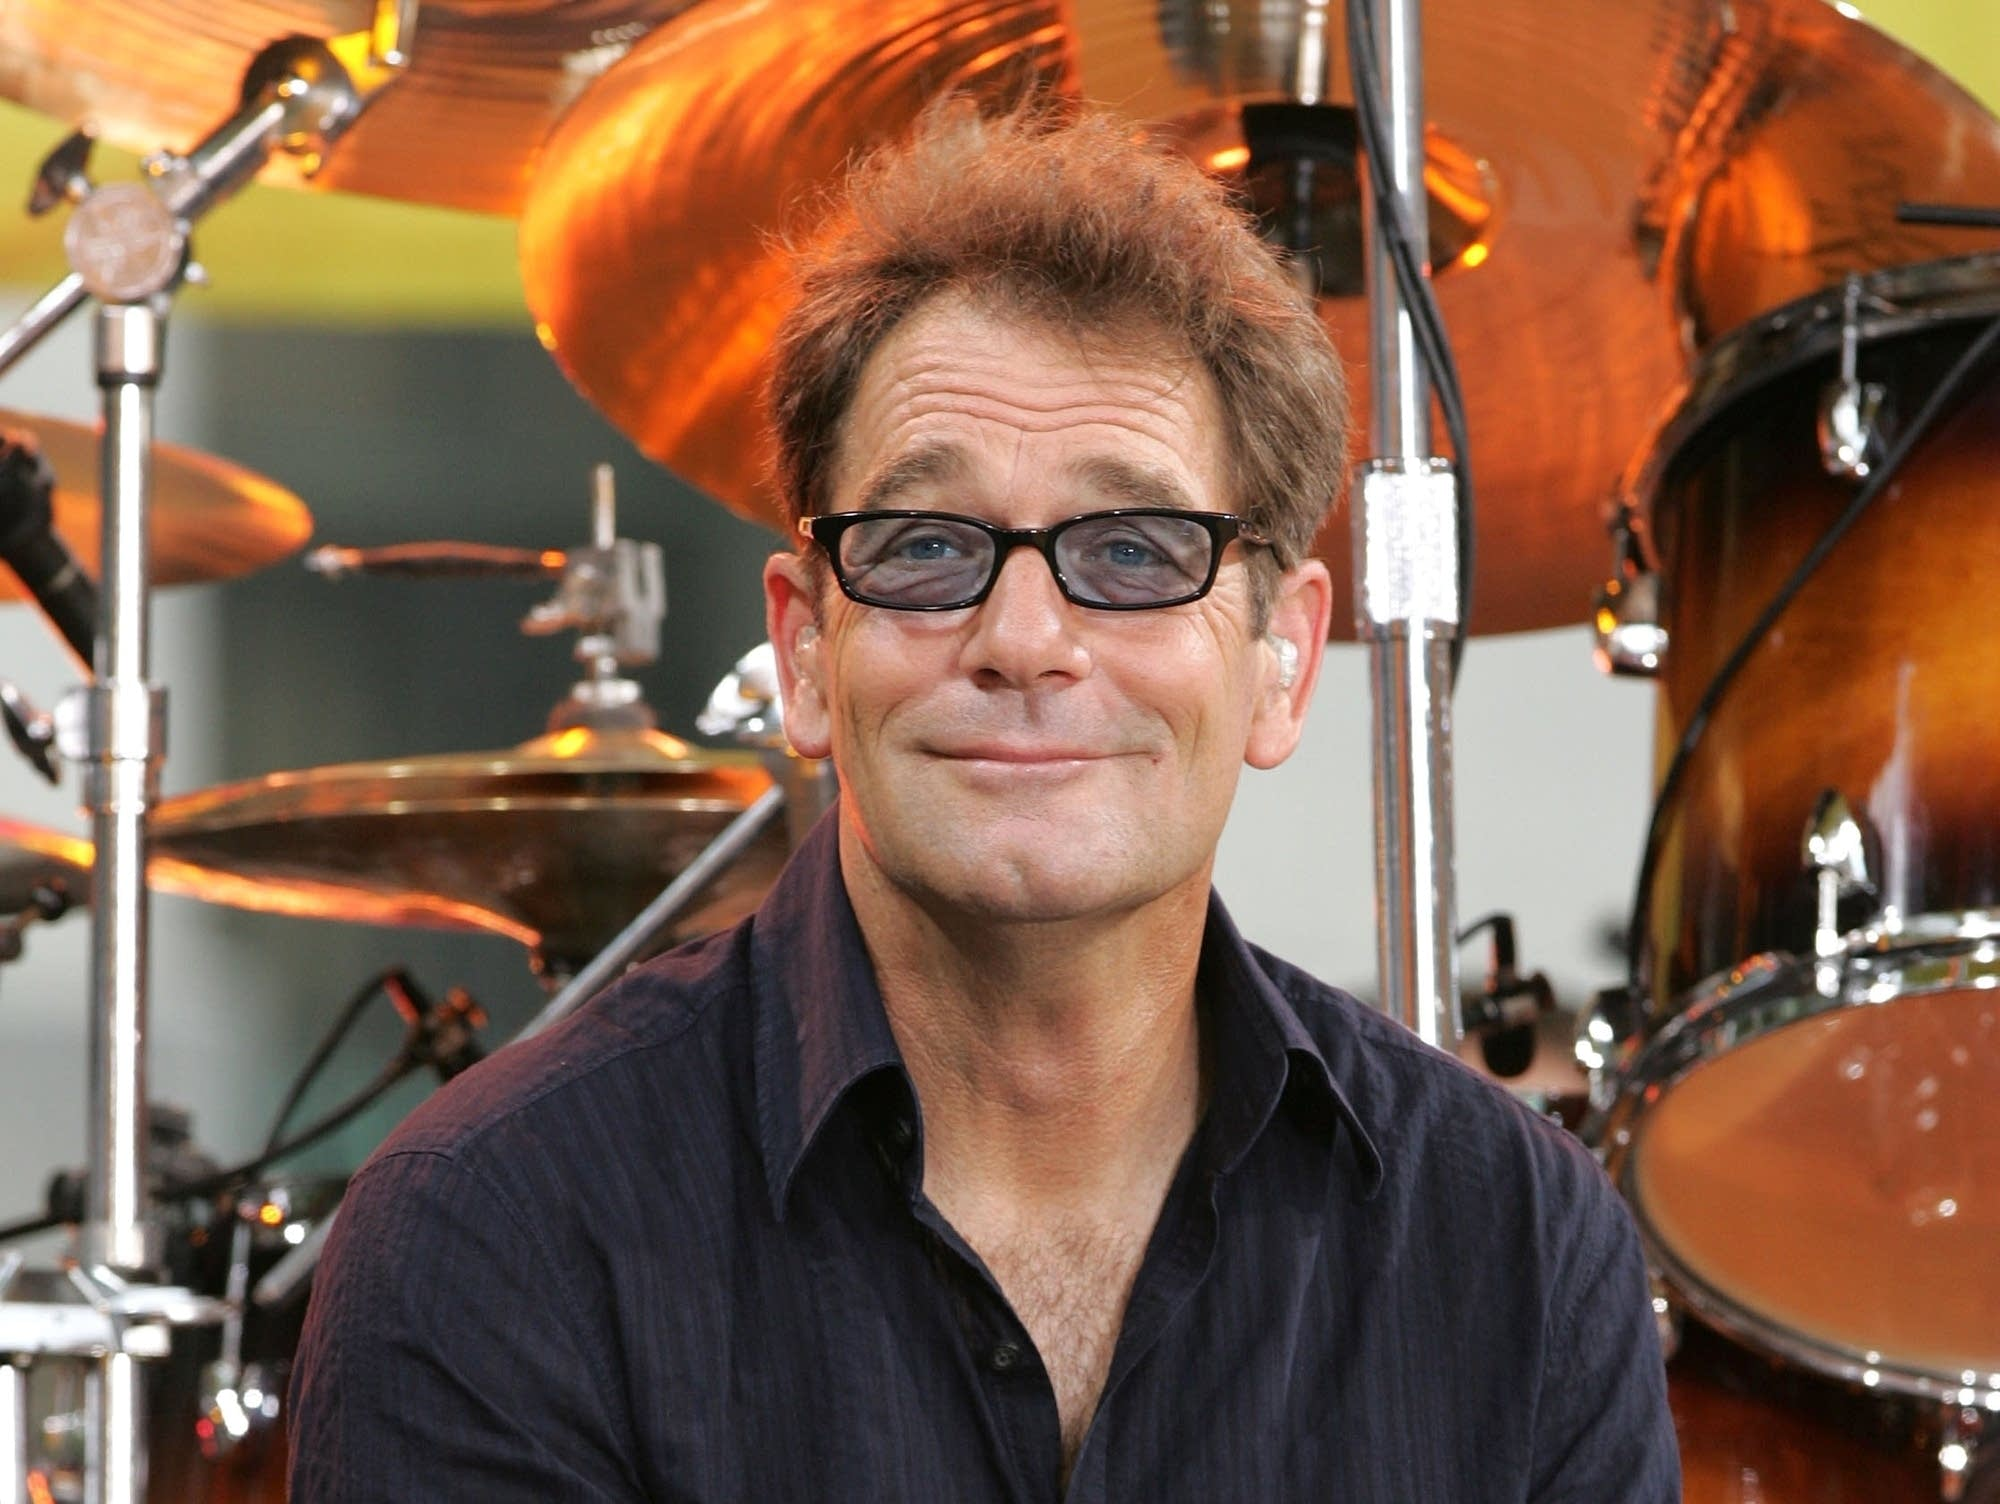 Huey Lewis on 'Good Morning America' in 2006.